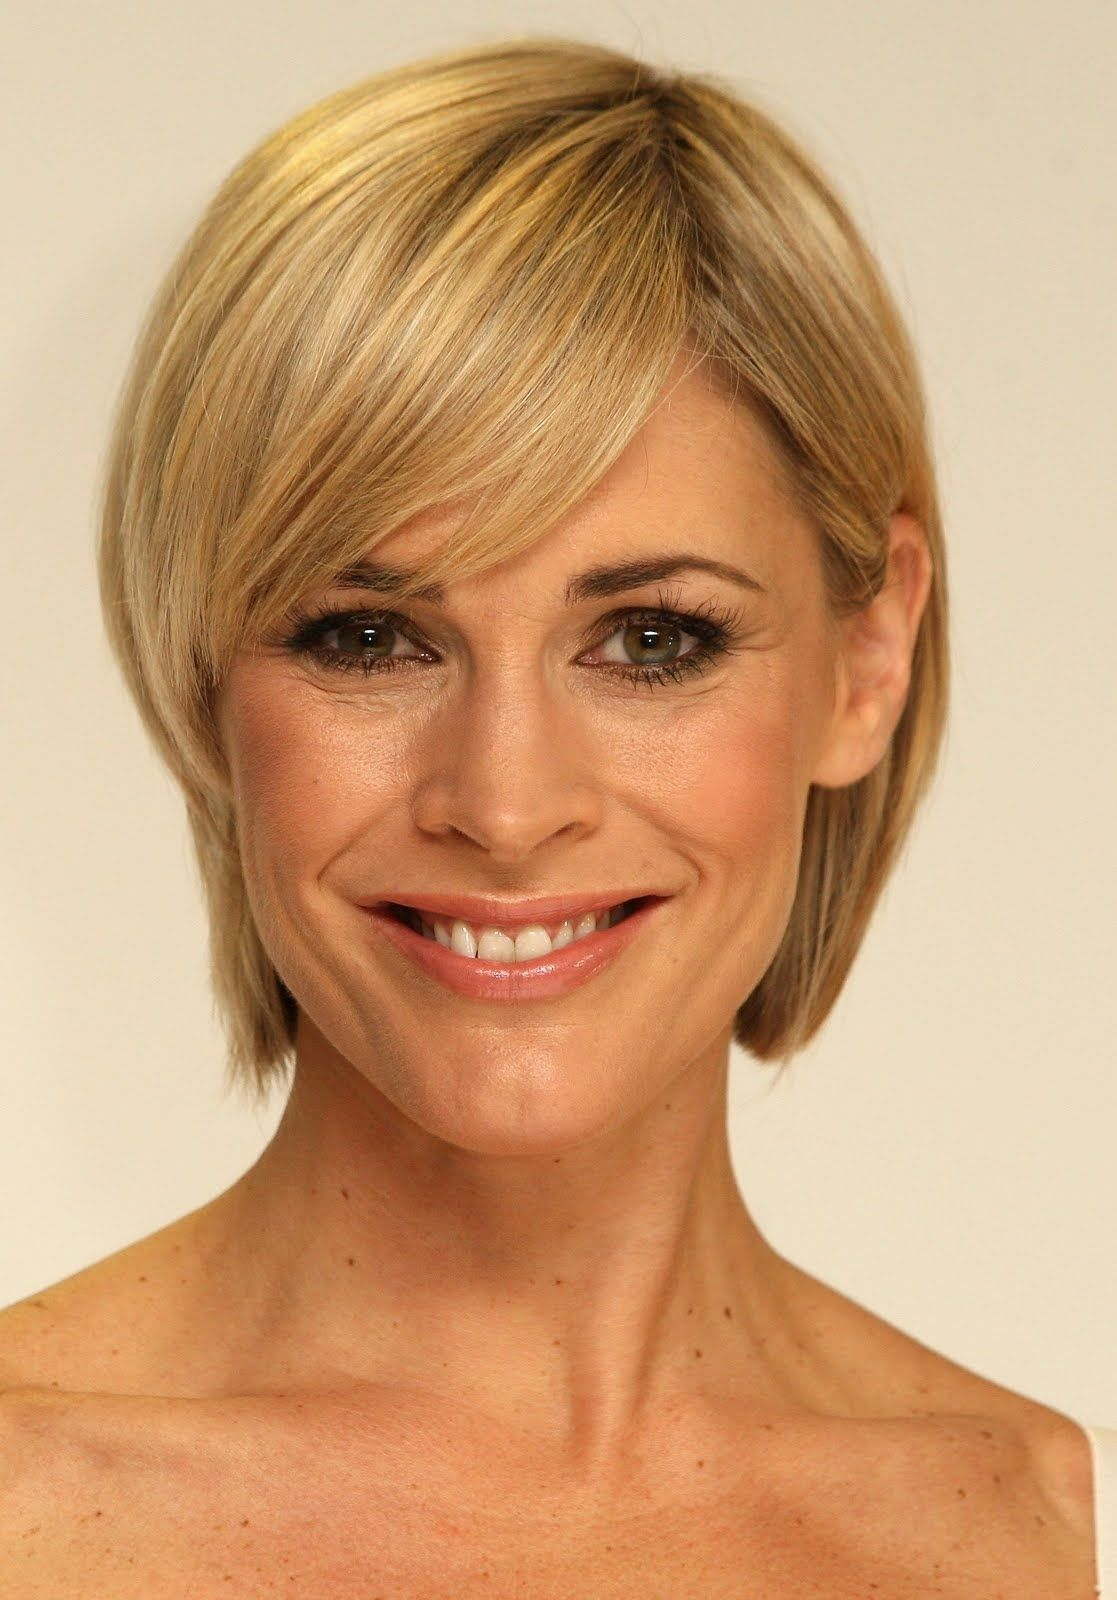 Medium to short hairstyles for round faces short hairstyles for